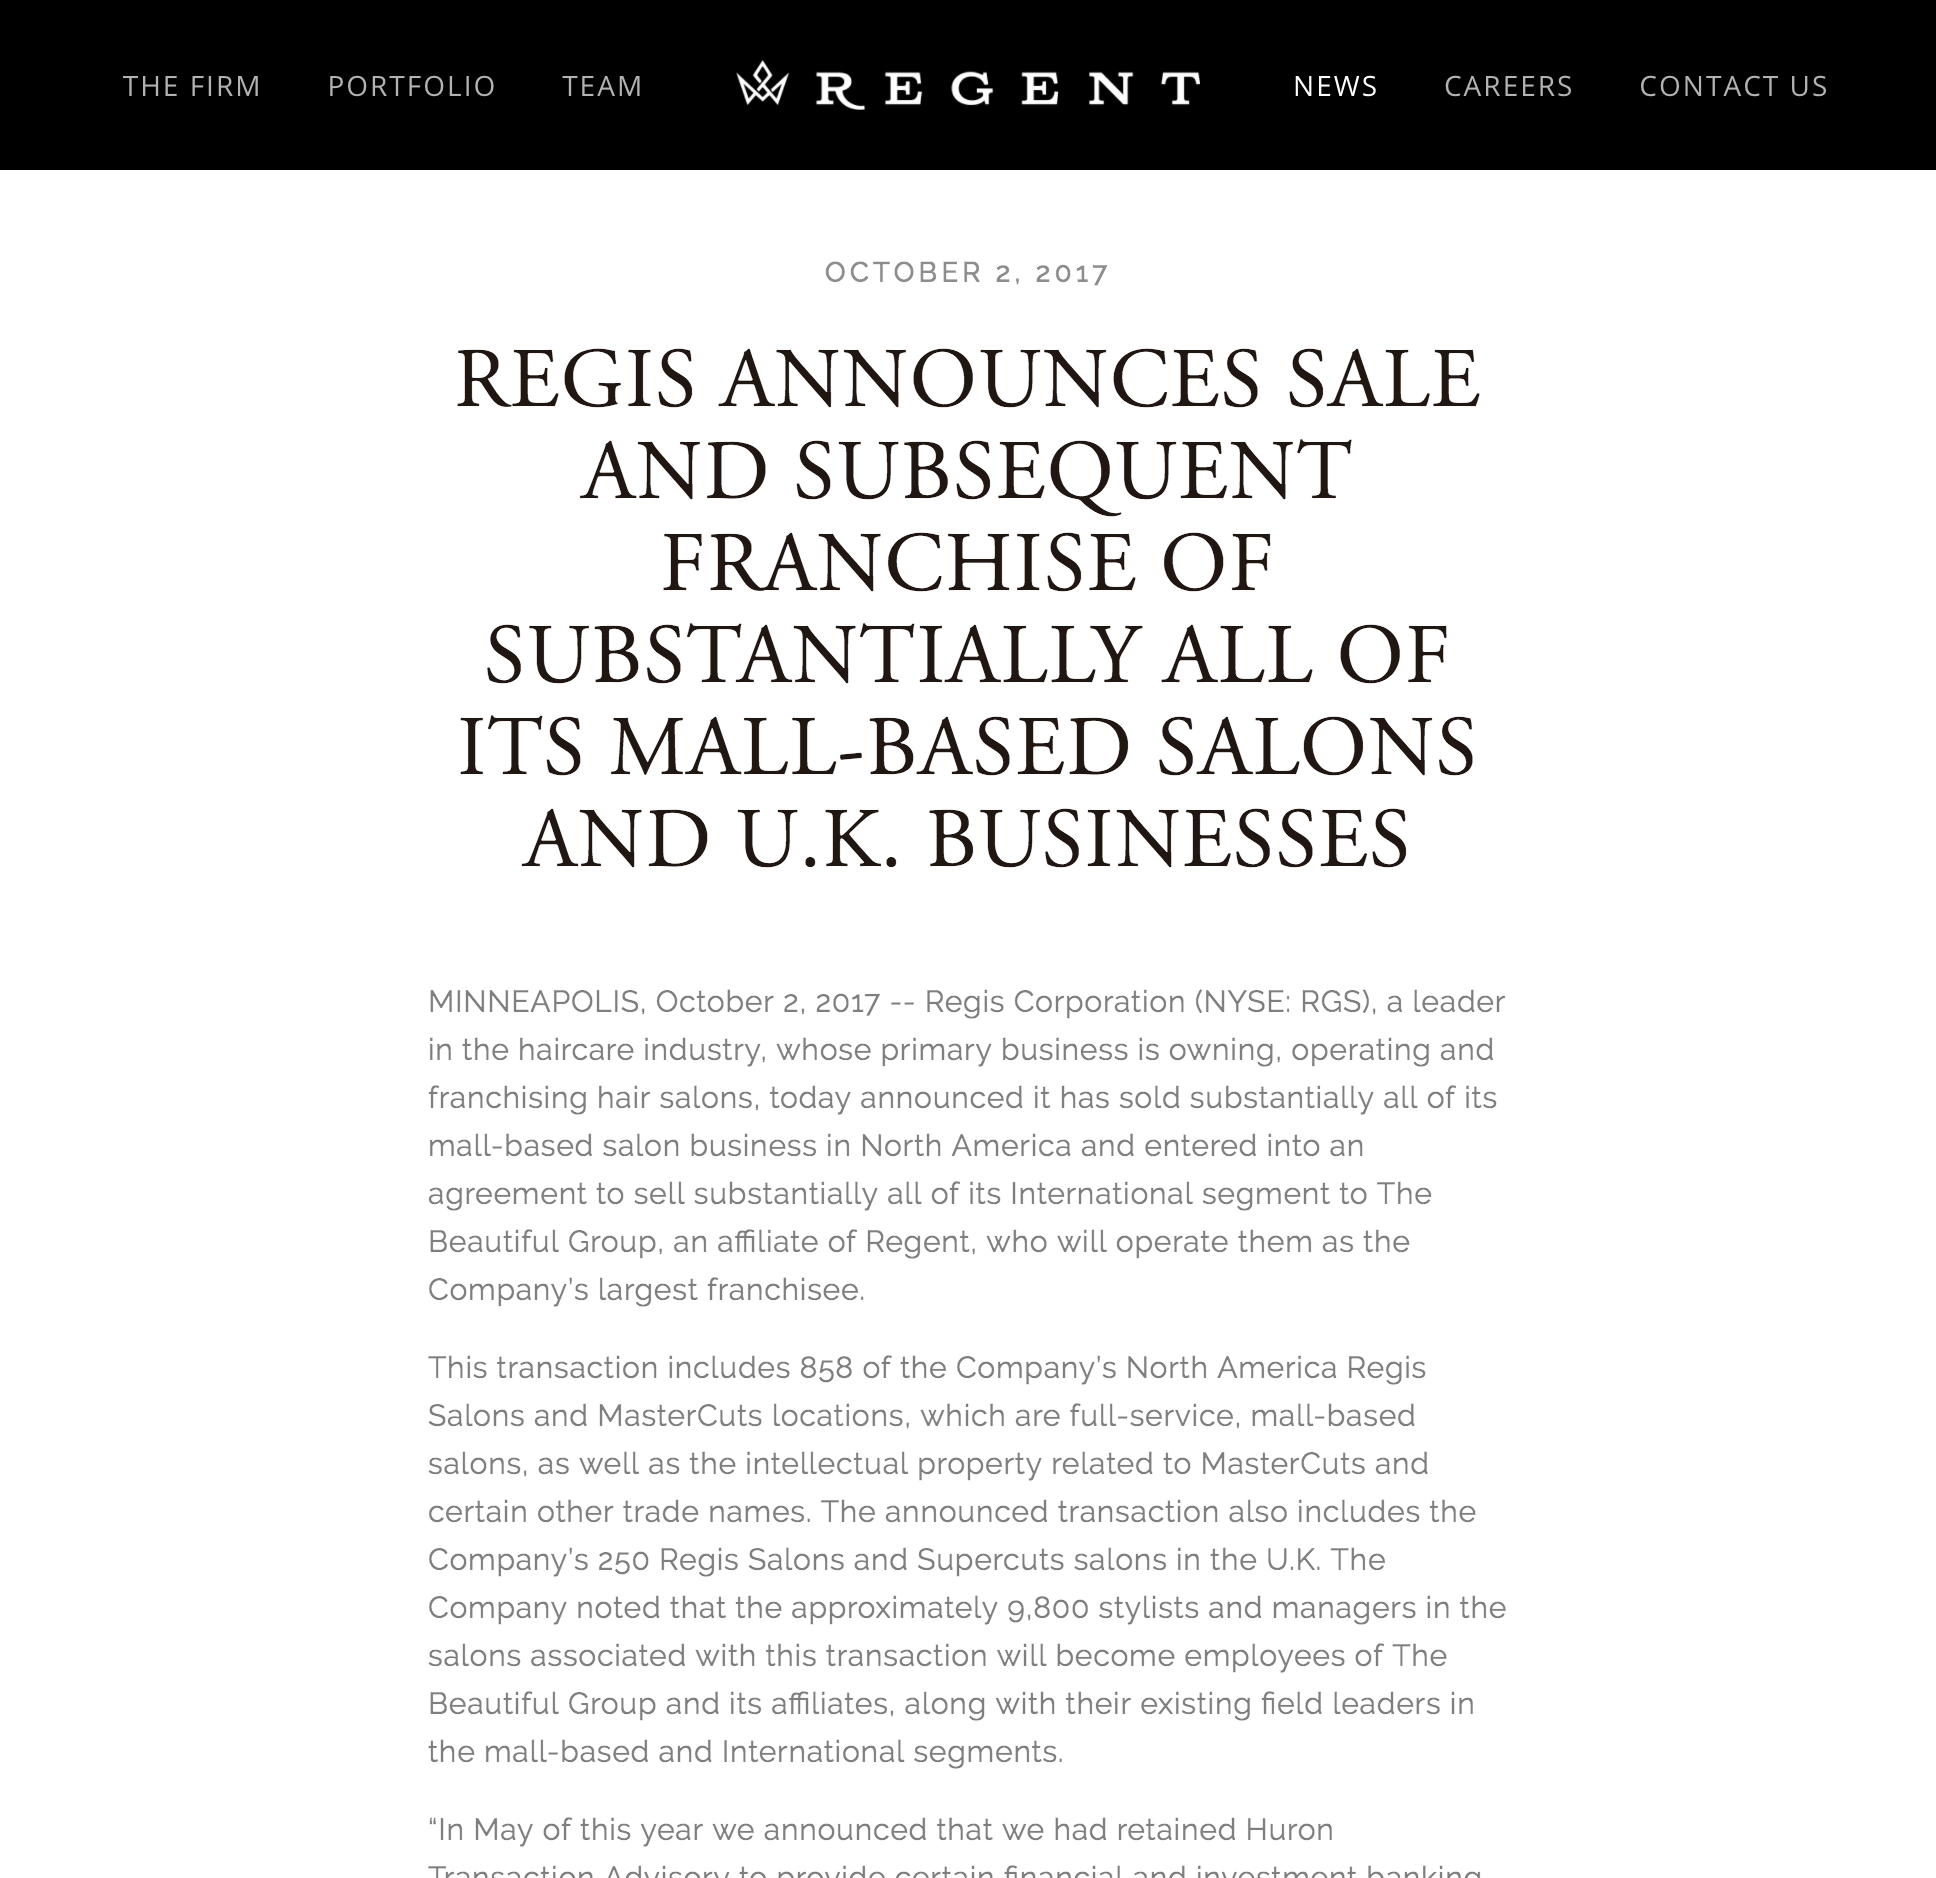 Regis Announces Sale and Subsequent Franchise - Regent, October 2, 2017